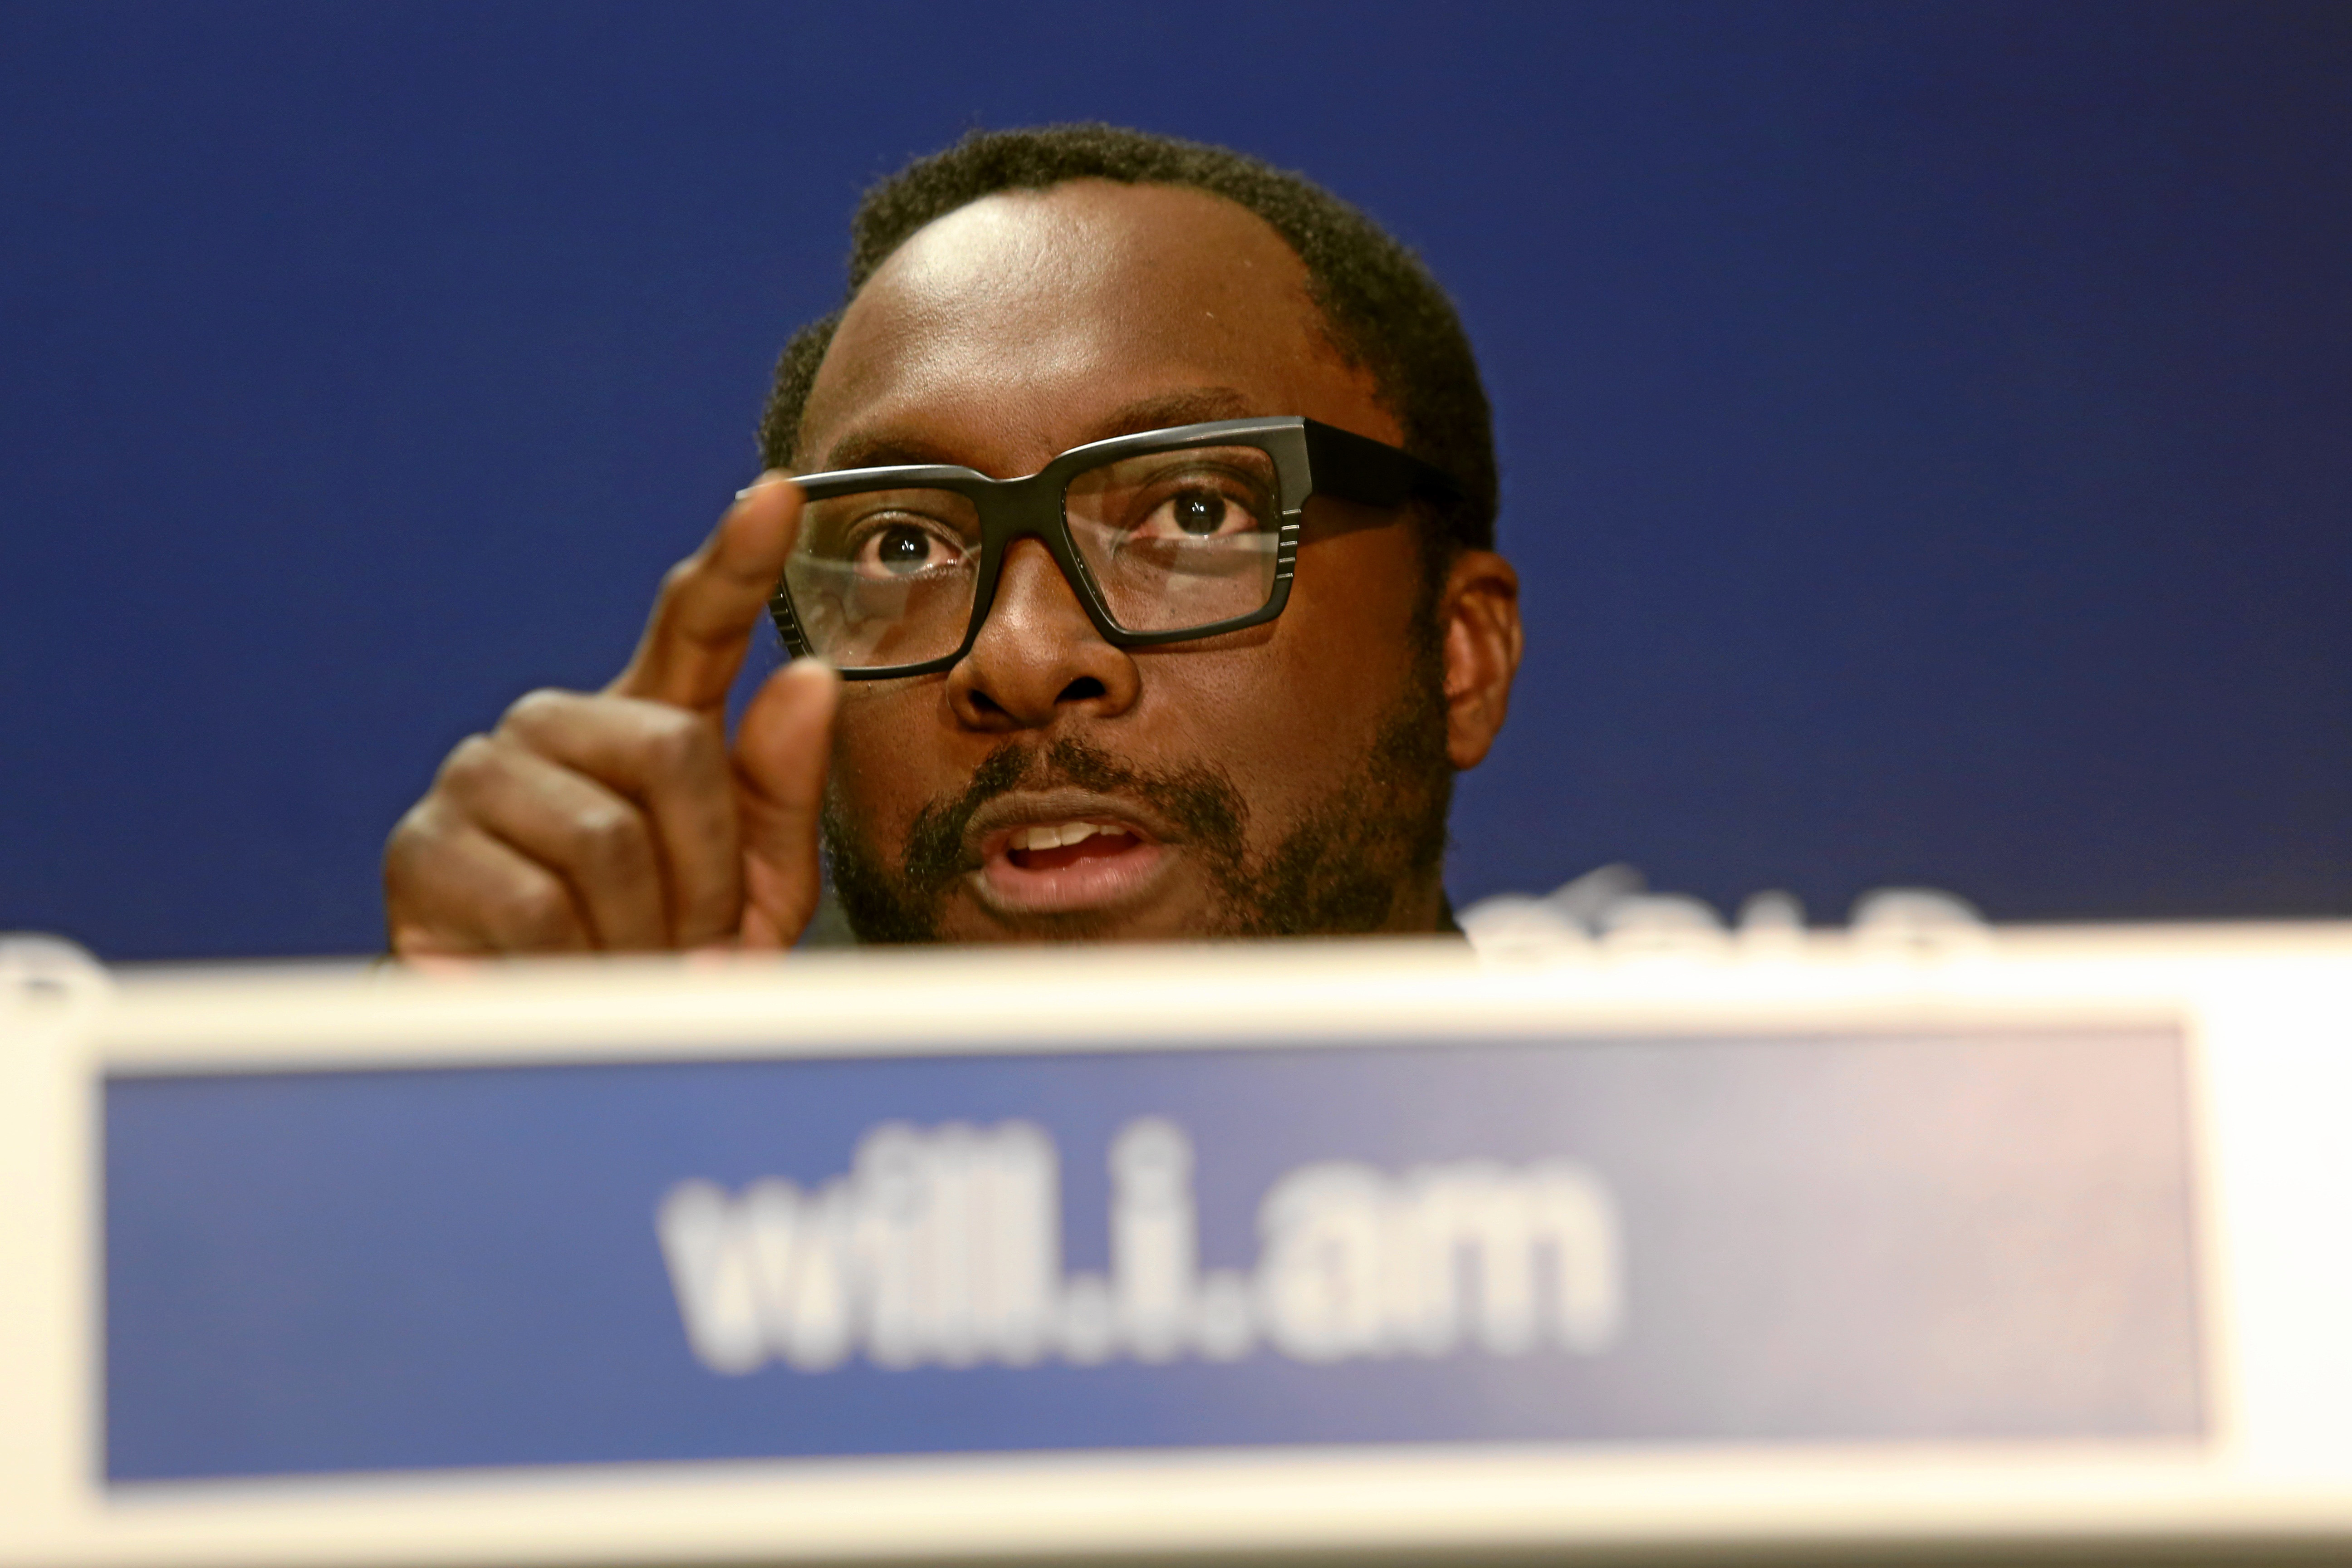 DAVOS/SWITZERLAND, 231JAN15 - William Adams, Founder, I.Am.Angel Foundation, USA speaks during the Press Conference 'William Adams 'Will.I.Am' in the congress centre at the Annual Meeting 2015 of the World Economic Forum in Davos, January 23, 2015.WORLD ECONOMIC FORUM/swiss-image.ch/Photo Michele Limina